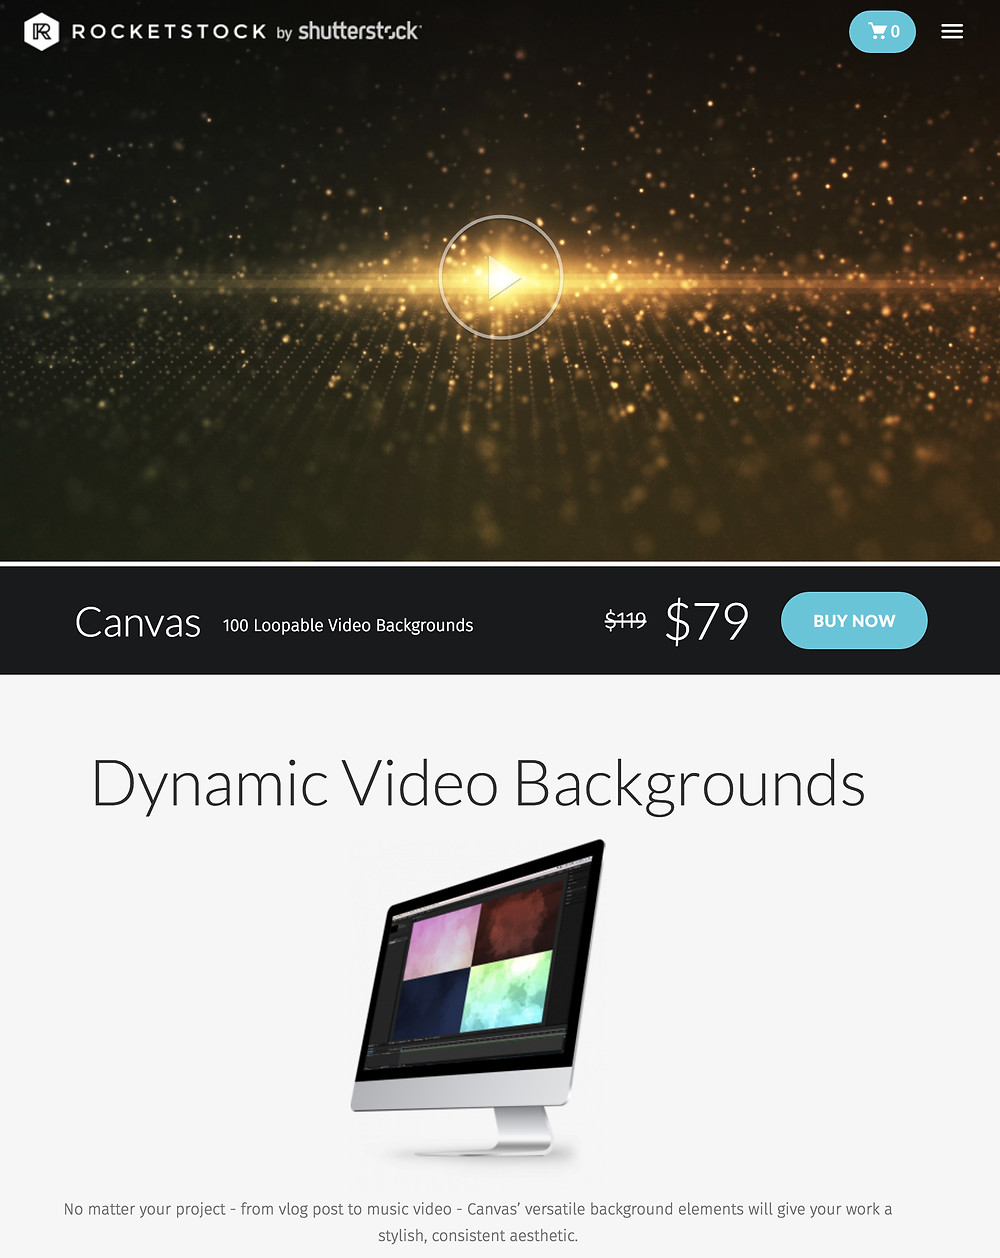 Loopable Video Backgrounds for Wix Websites - SEO hero Tip